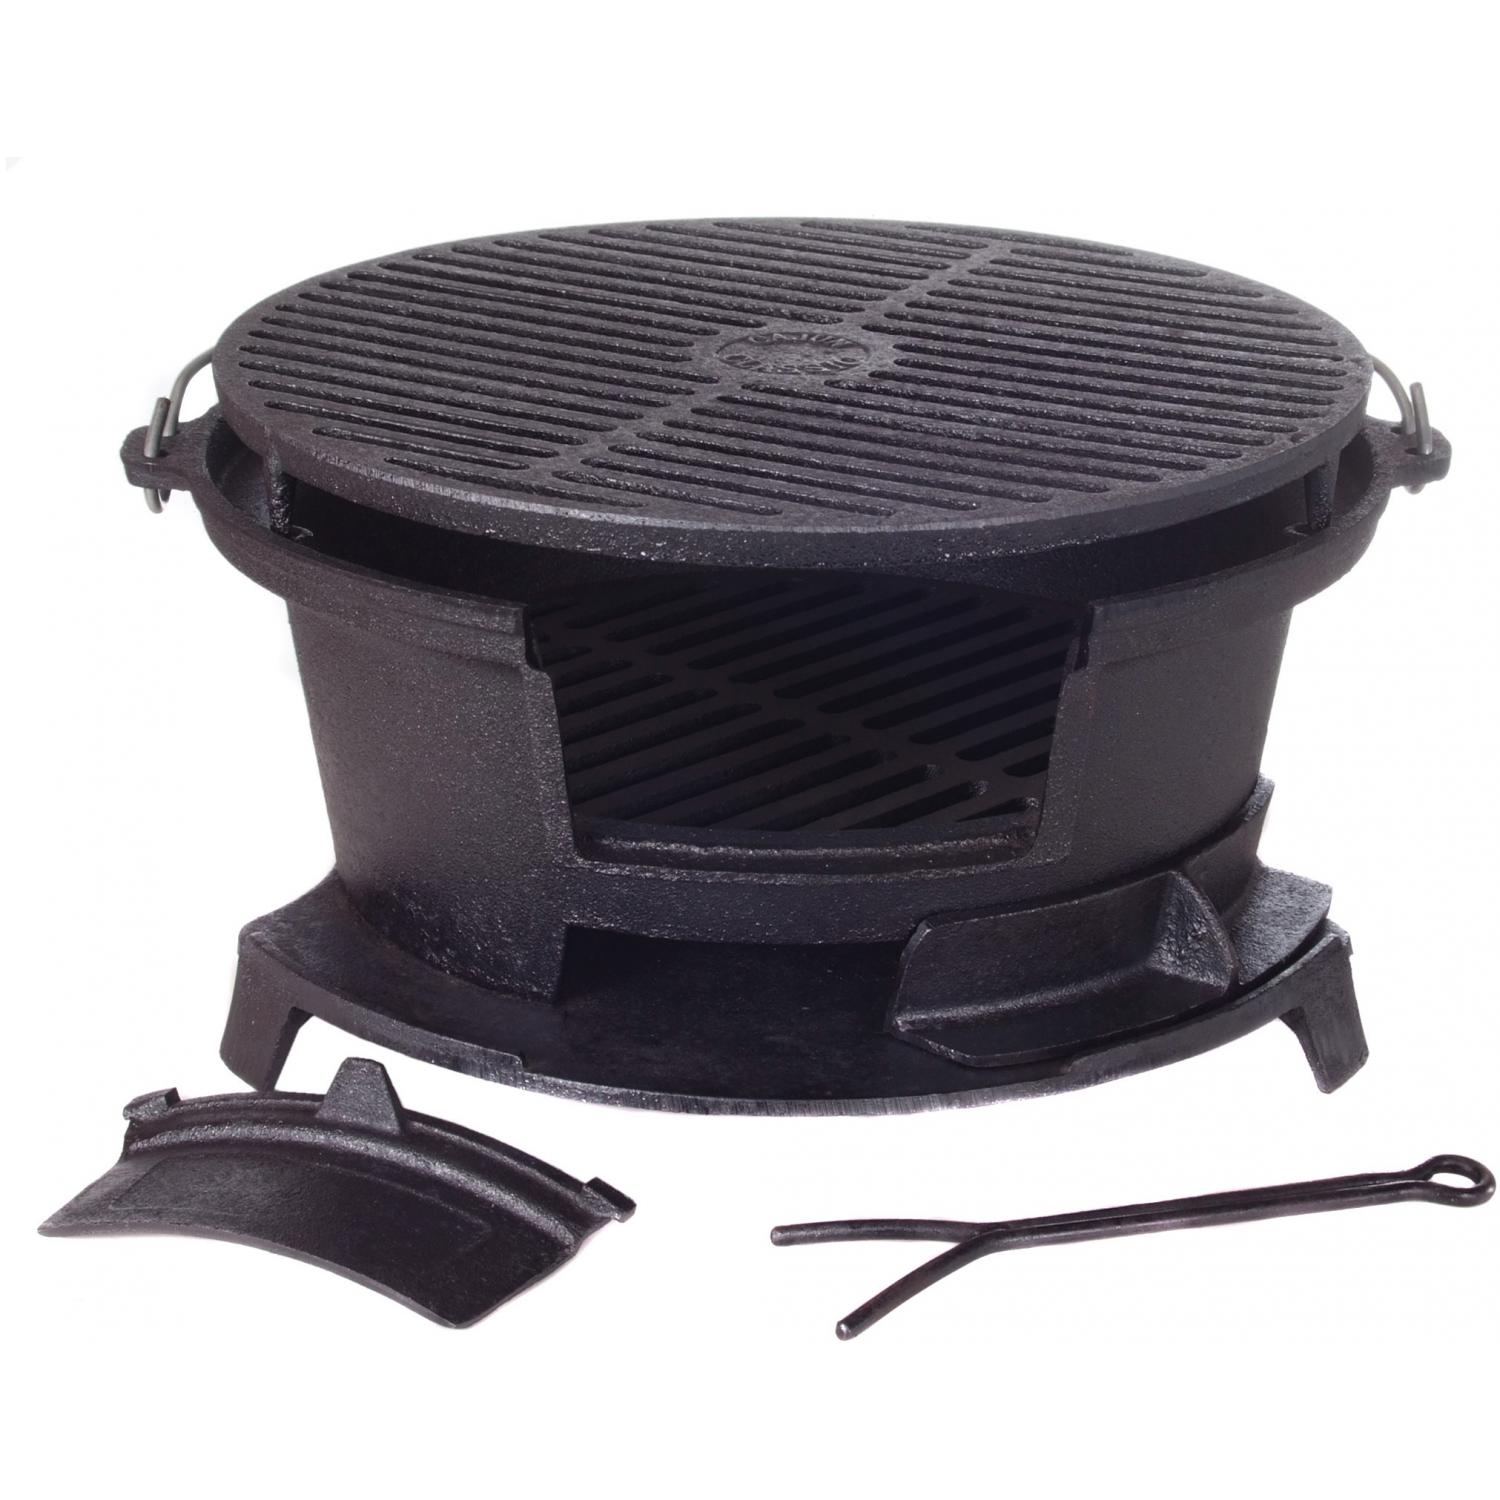 Product Categories Home Stoves Grills 10448 Hibachi Grill 11 5 Diameter Cast Iron